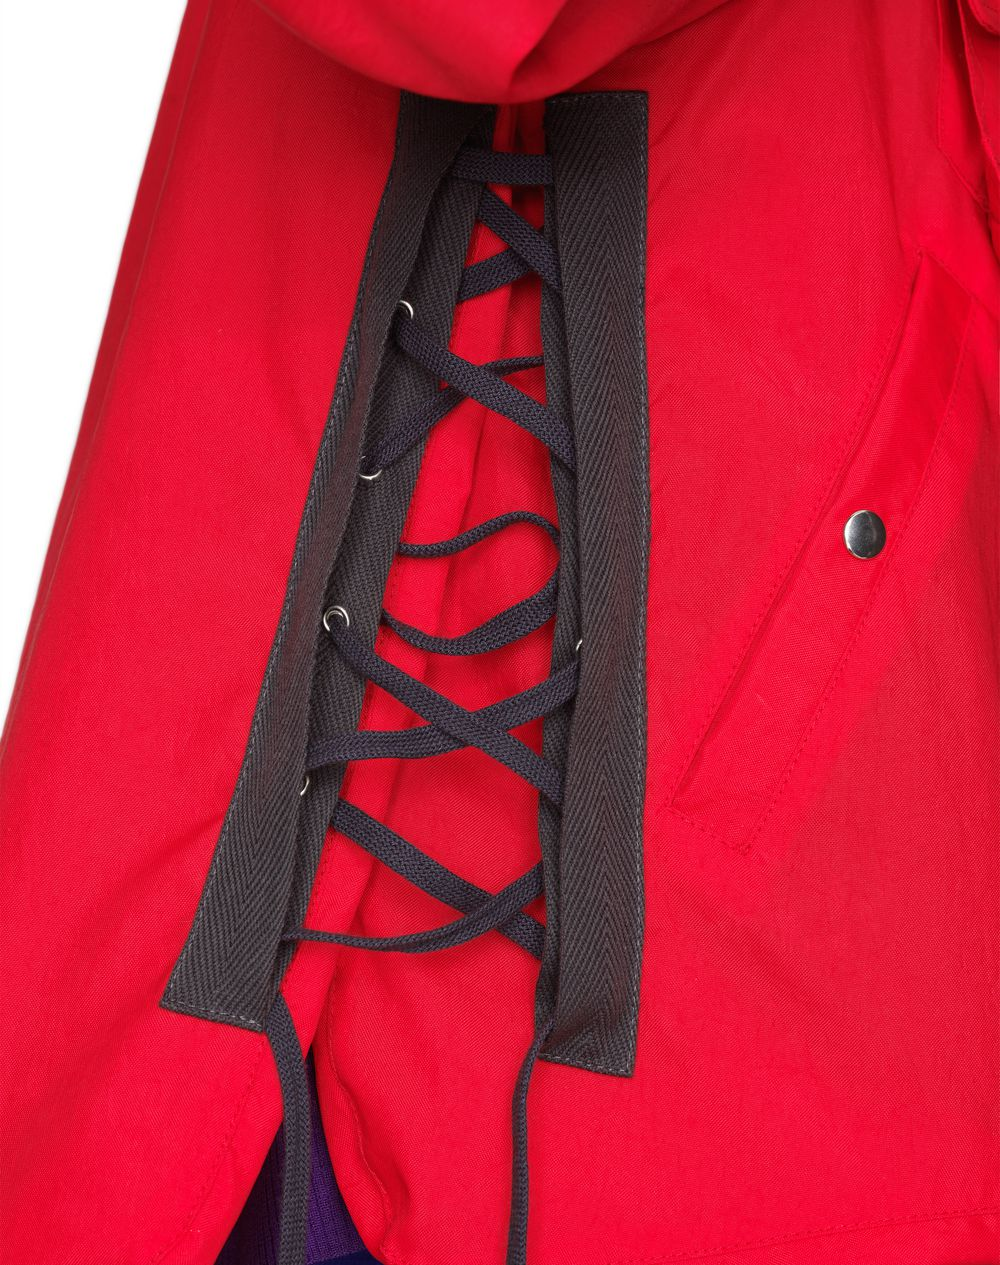 SHORT RED JACKET WITH LACING DETAILS   - Lanvin